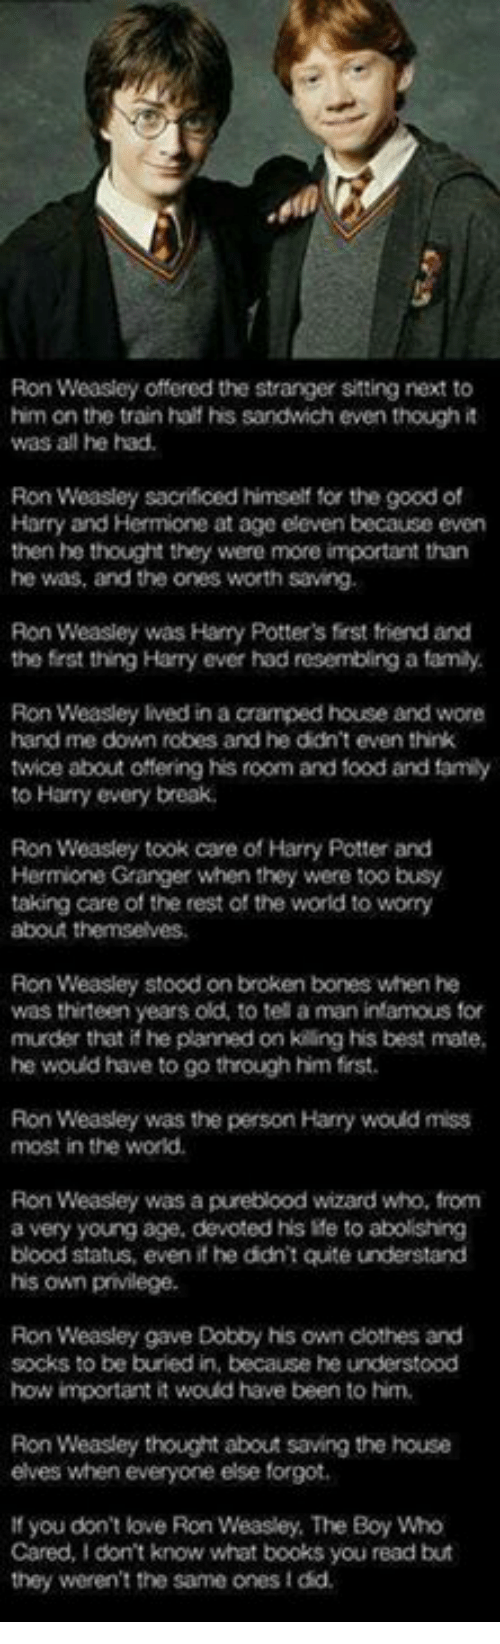 Bones, Books, and Clothes: Ron Weasley offered the stranger sitting to  him on the train half his sandwich even though it  was all he had.  Ron Weasley sacrificed himself for the good of  Harry and Hermione at age eleven because even  then he thought they were more important than  he was, worth saving.  Ron Weasley was Harry Potters first friend and  the first thing Harry ever had resembling a famly.  Ron Weasley lived in a cramped house and wore  hand me down robes and he didn't even think  twice about offering his room and food and family  to Harry every break.  Ron Weasley took care of Harry Potter and  Hermione Granger when they were too busy  taking care of the rest of the world to worry  Ron Weasley stood on broken bones when he  was thirteen years old, to tell a man infamous for  murder that if he planned on kiing his best mate,  he would have to go through him frst.  Ron Weasley was the person Harry would miss  most in the world.  Ron Weasley was a pureblood wizard who, from  a very young age, devoted his ile to abolishing  blood status, even he didn't quite understand  his own privilege.  Ron Weasley gave Dobby his own clothes and  socks to be buried in, because he understood  how important it would have been to him.  Ron Weasley thought about saving the house  elves when everyone else forgot.  If you don't love Ron Weasley, The Boy Who  Cared, don't know what books you read but  they weren't the same onesidd.